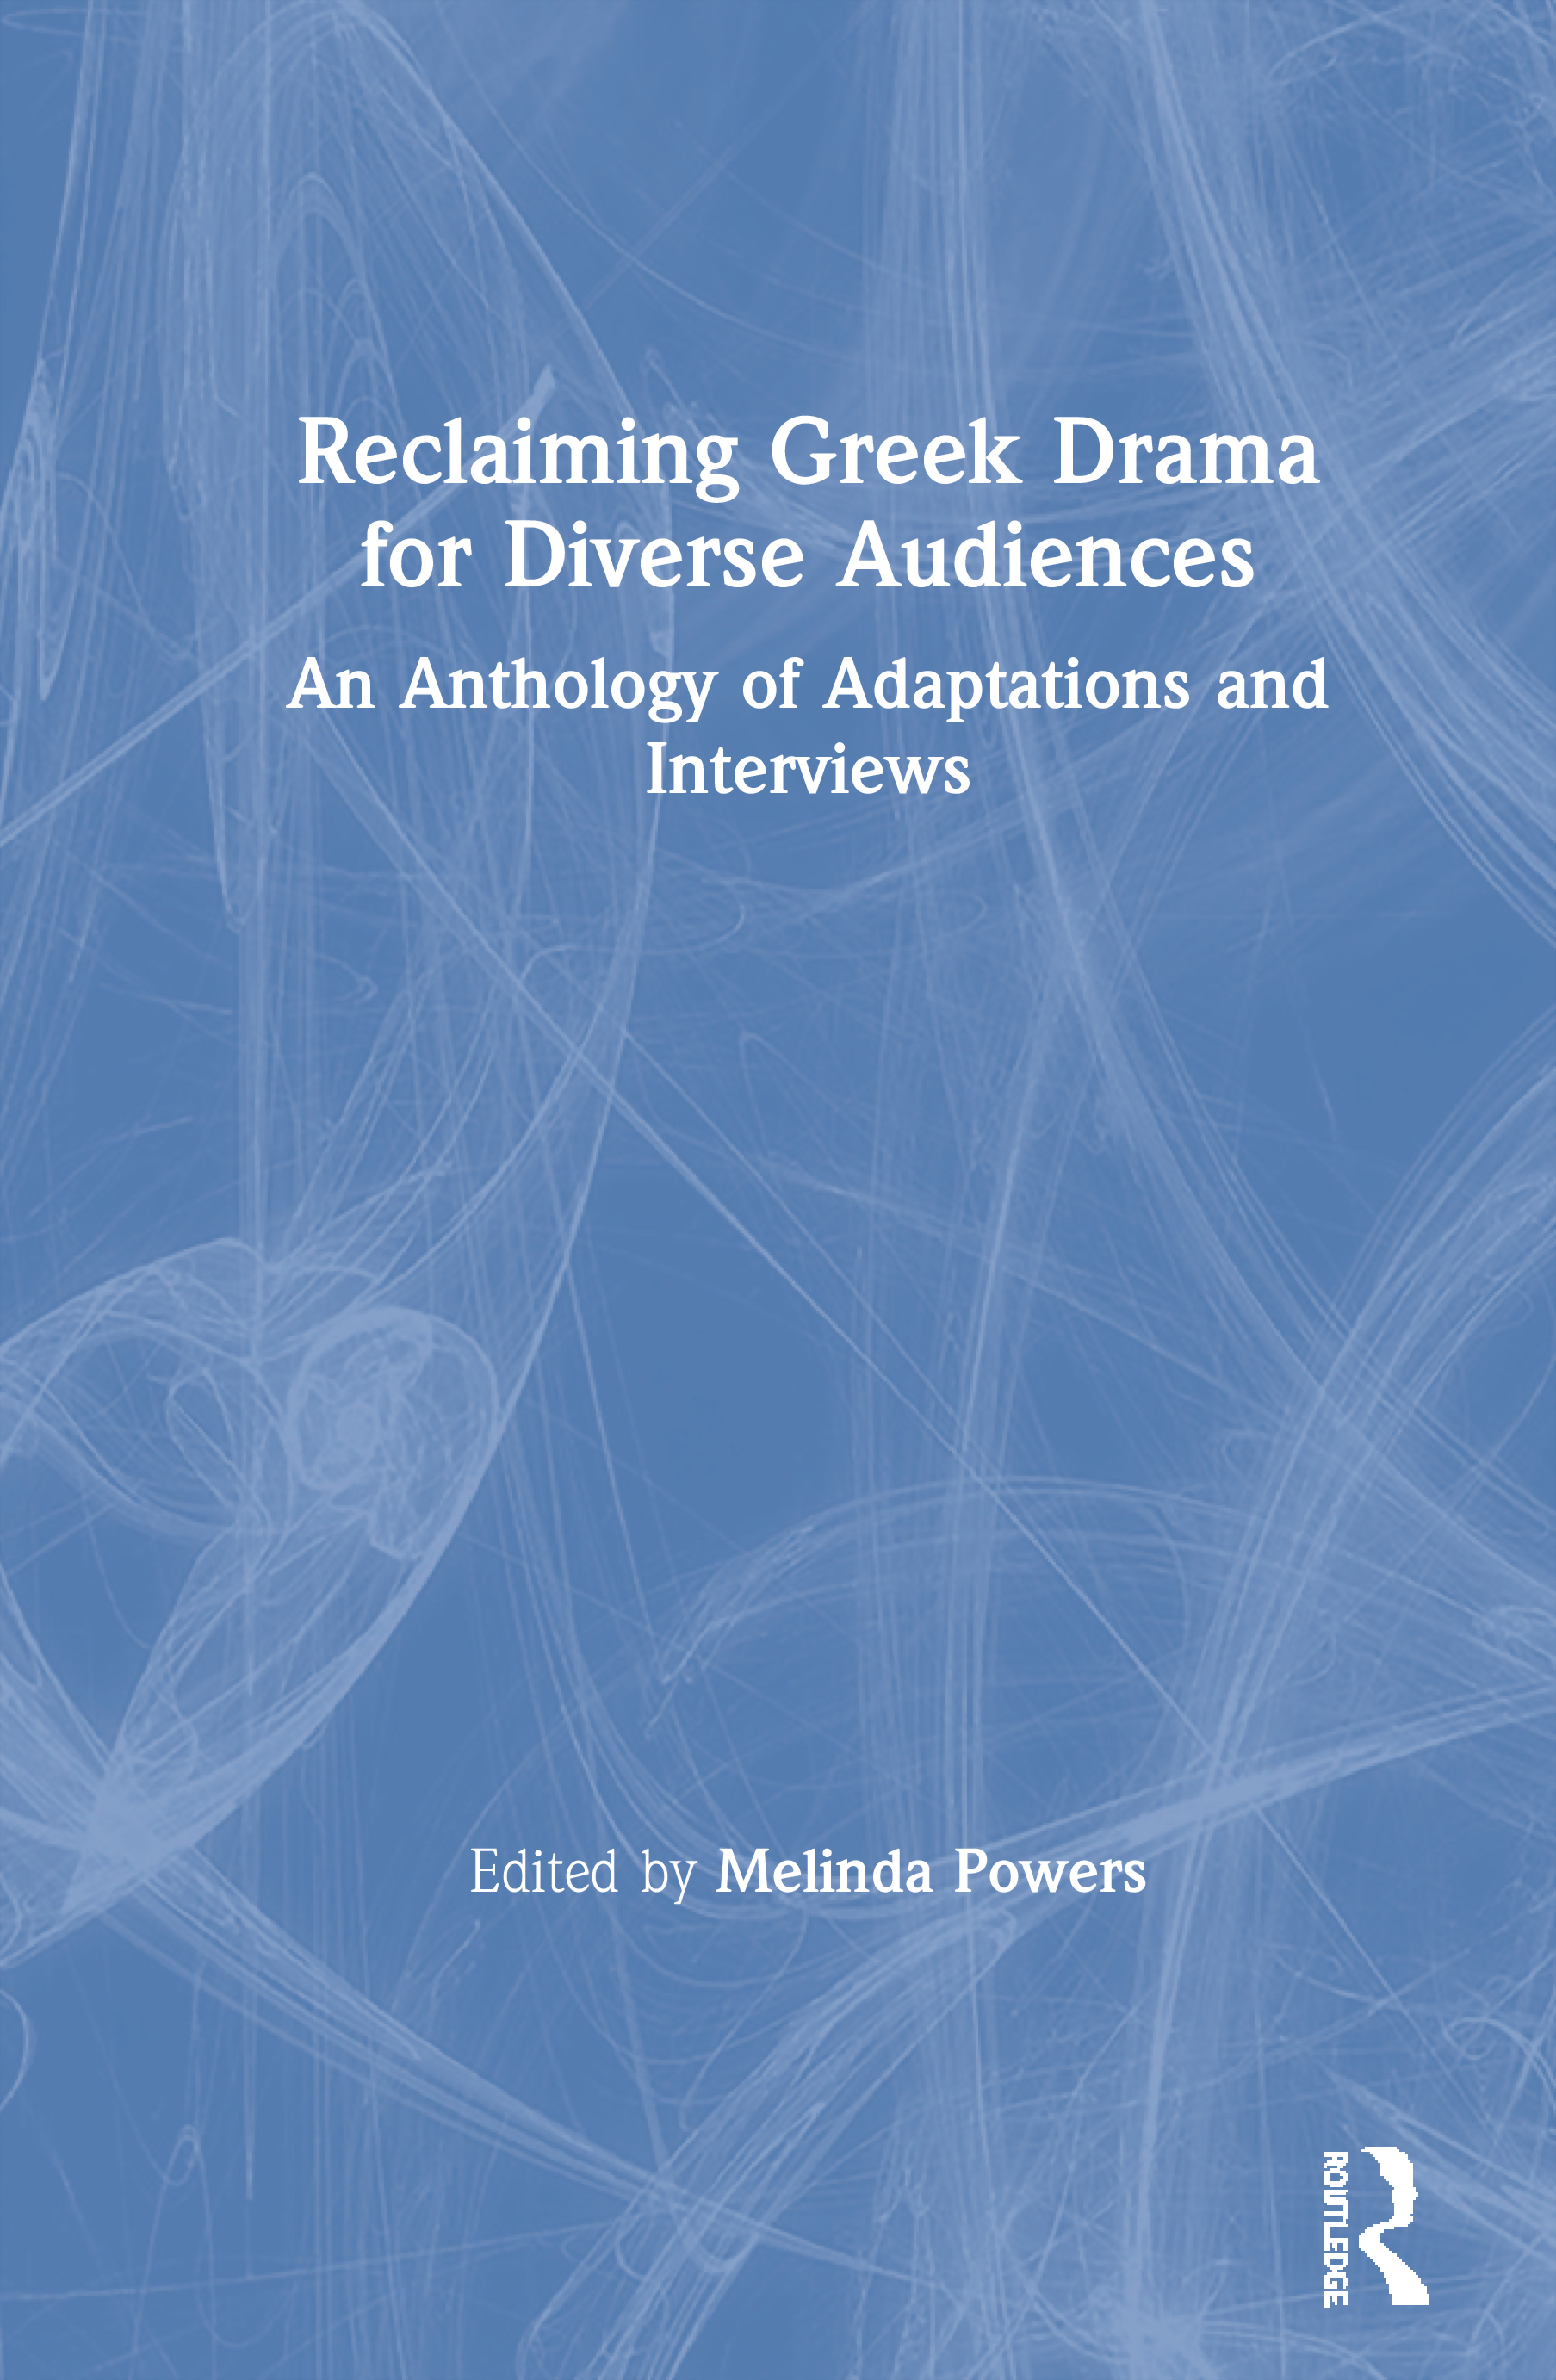 Reclaiming Greek Drama for Diverse Audiences: An Anthology of Adaptations and Interviews book cover